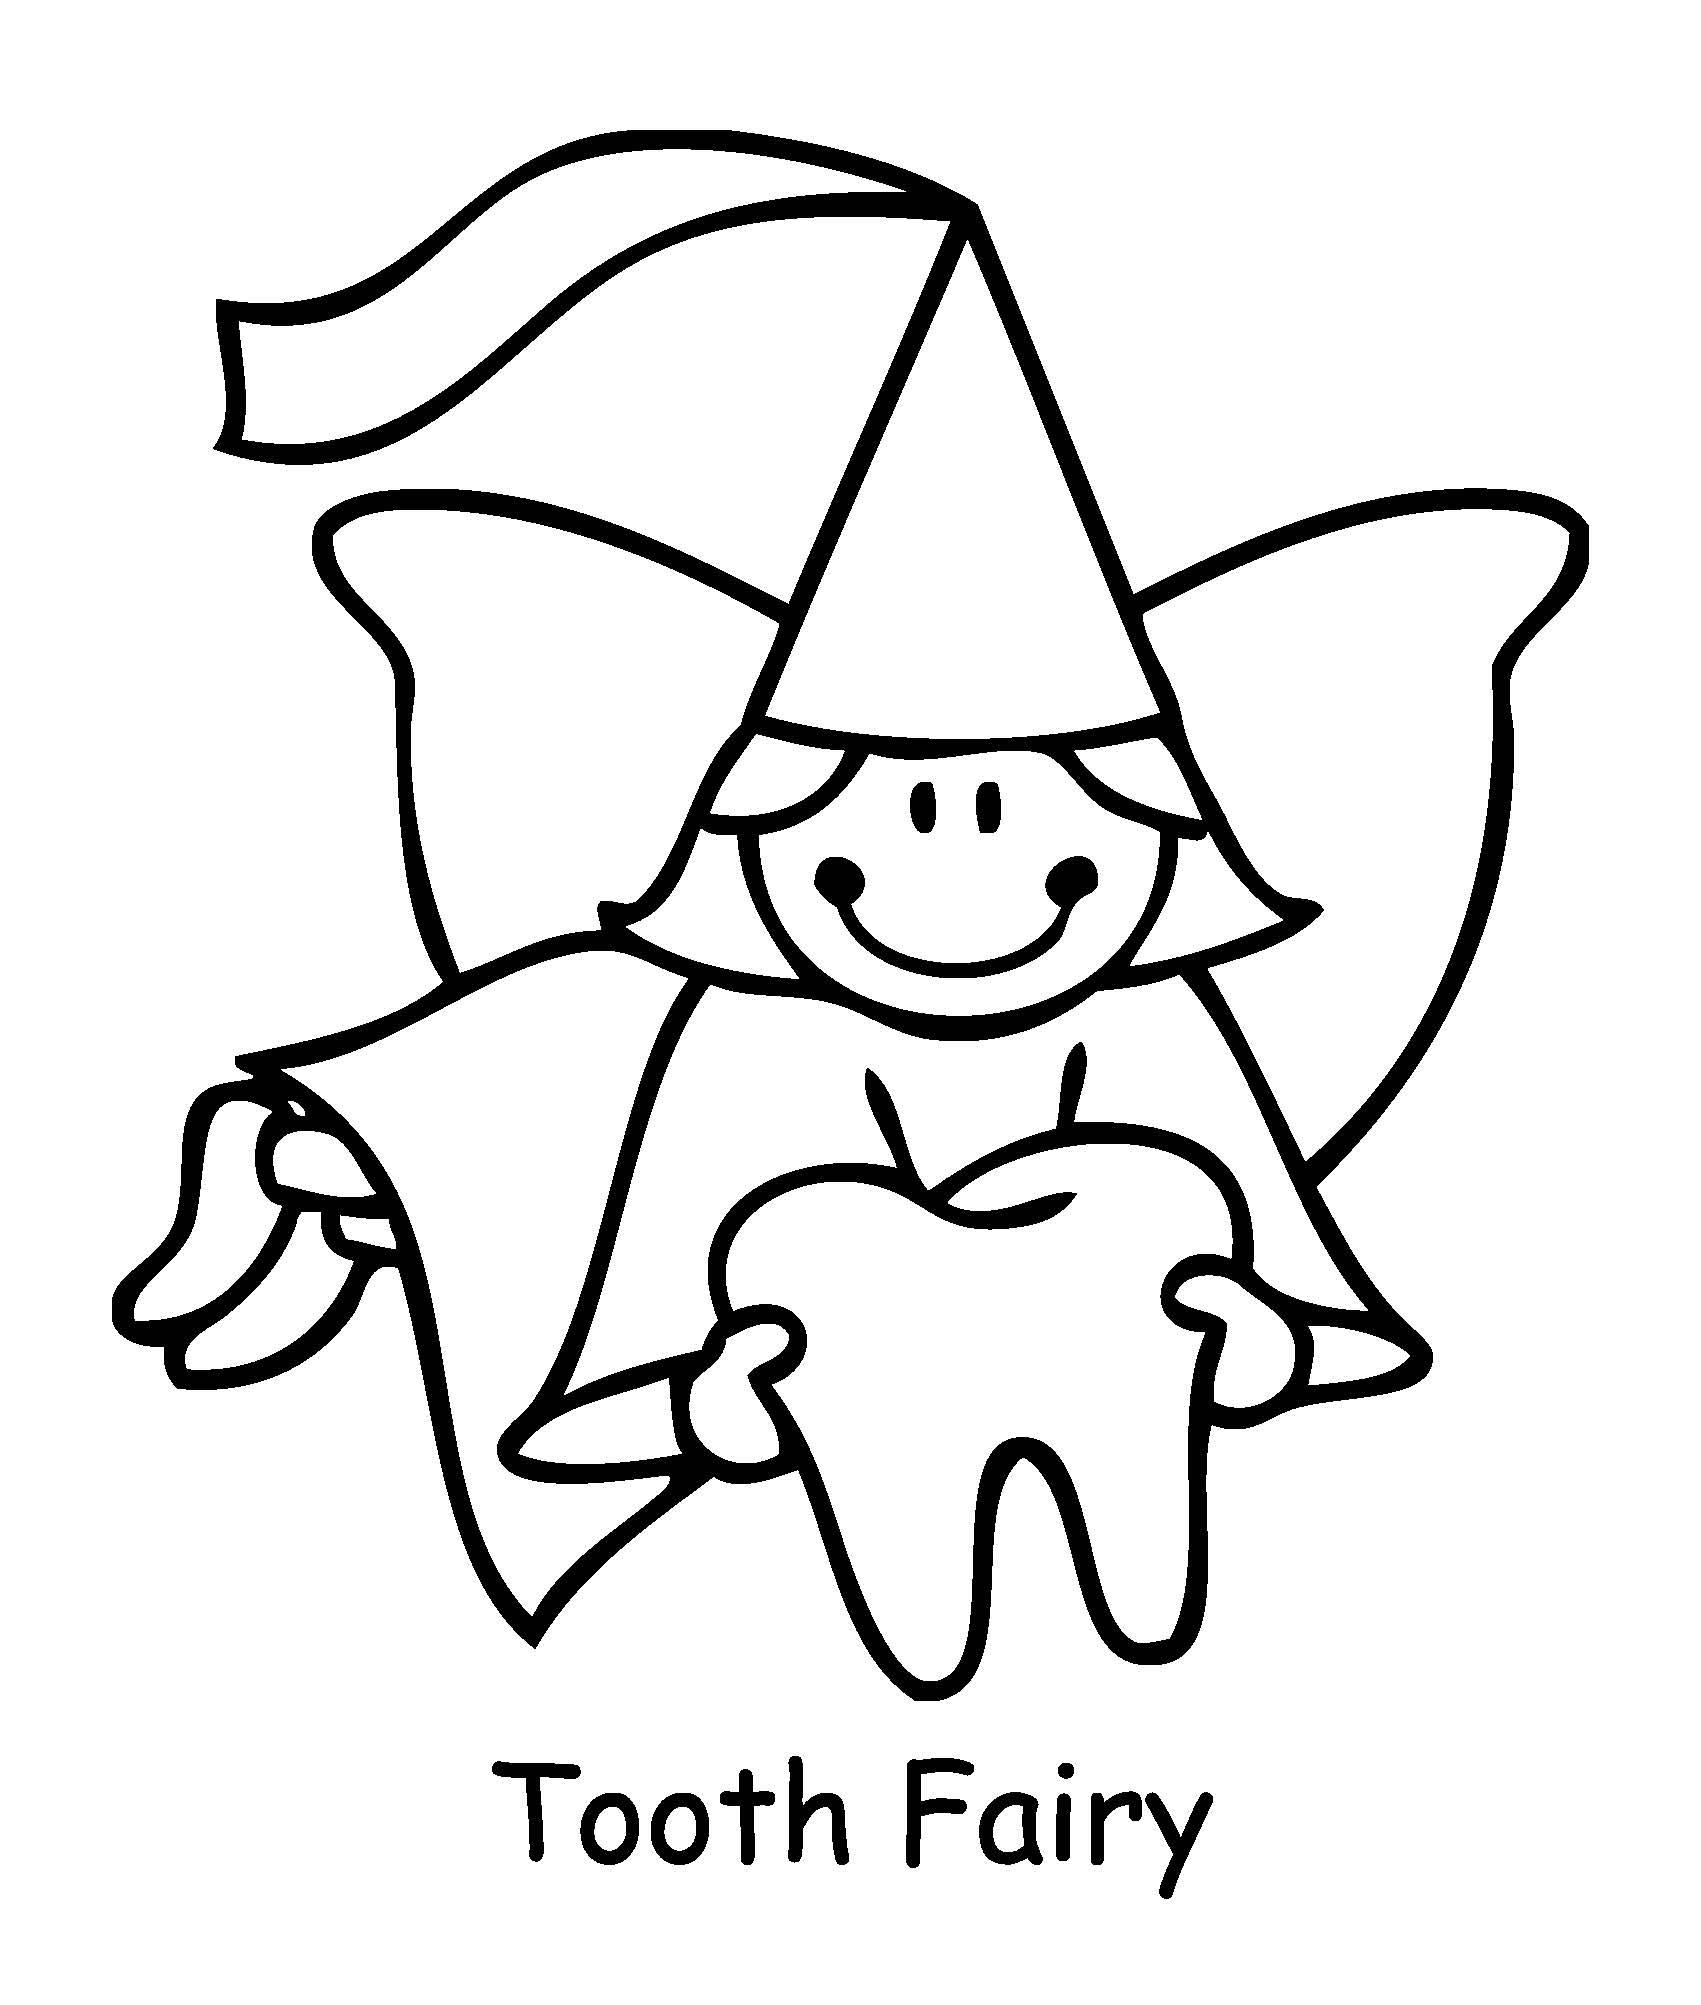 911 Coloring Pages Preschoolers